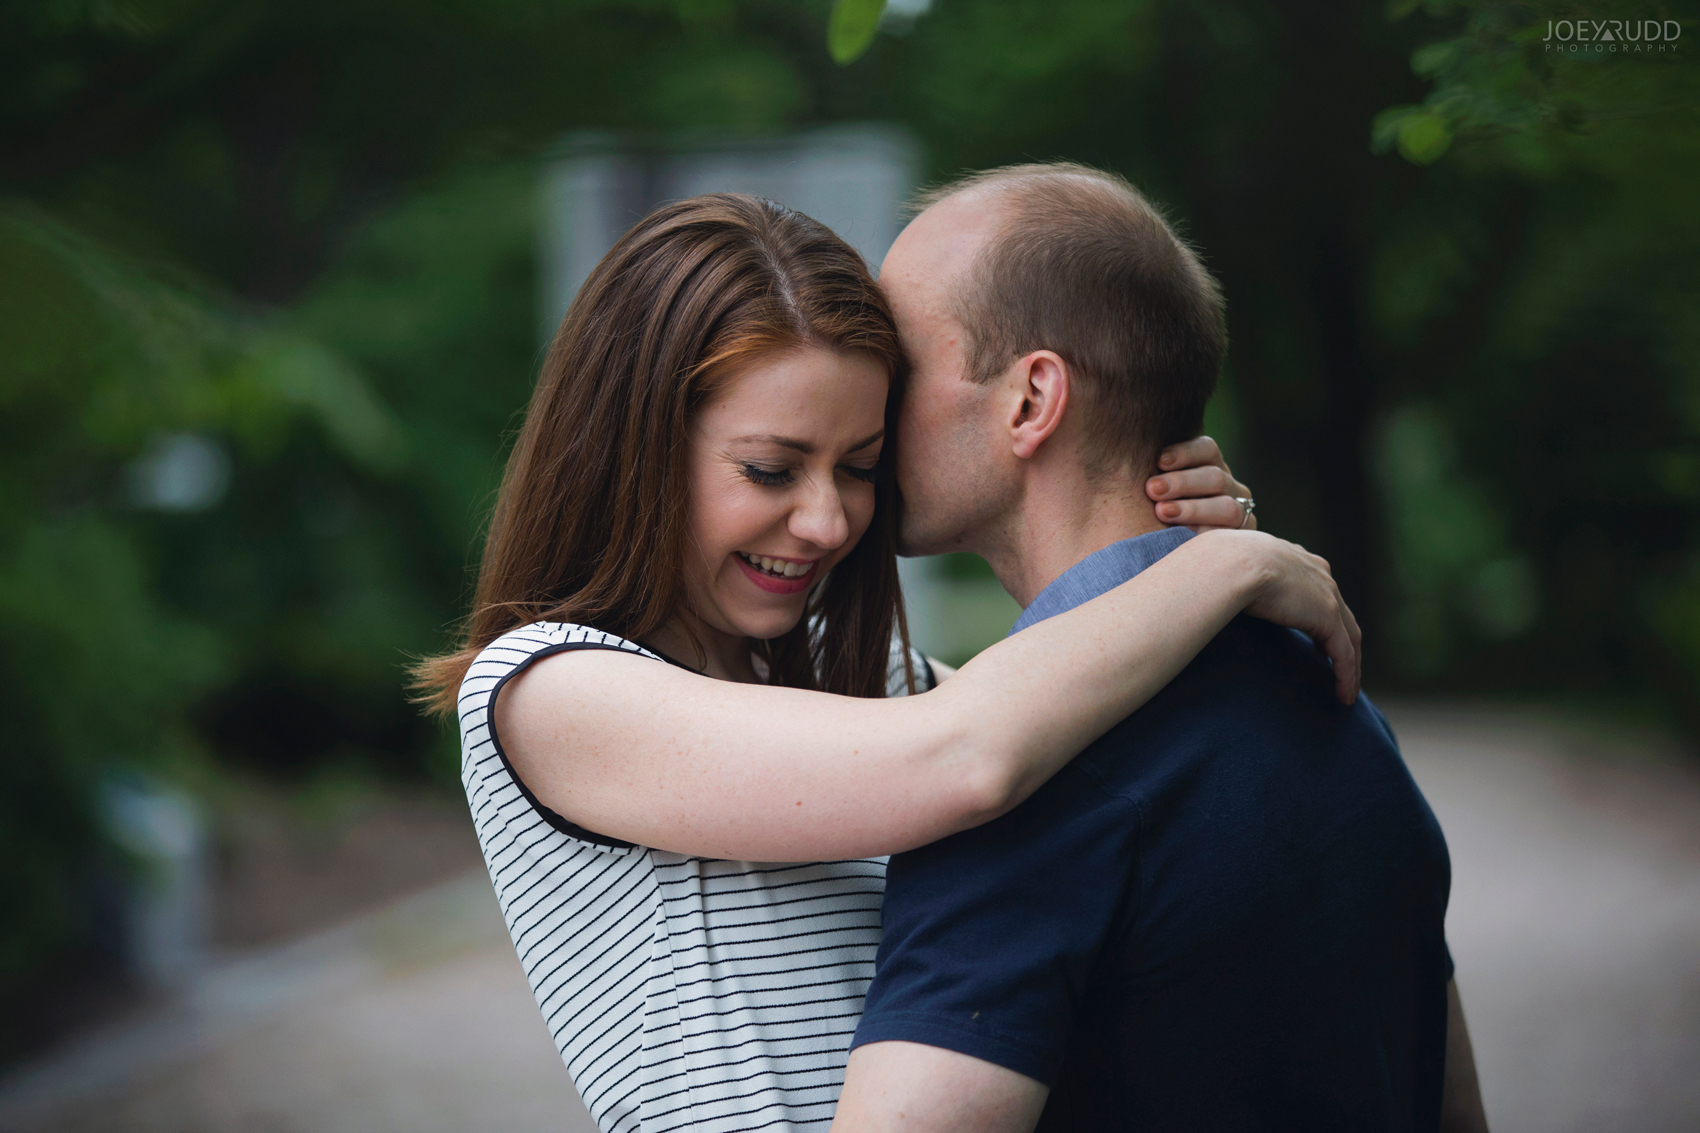 Rideau Hall Engagement, Joey Rudd Photography, Ottawa, Ottawa Engagement, Ottawa Engagement Photos, Fountain, Engaged Ottawa, Wedding Photographer, Wedding Photography, Rideau Park, Photo Locations Ottawa, Places for Photos in Ottawa, happy